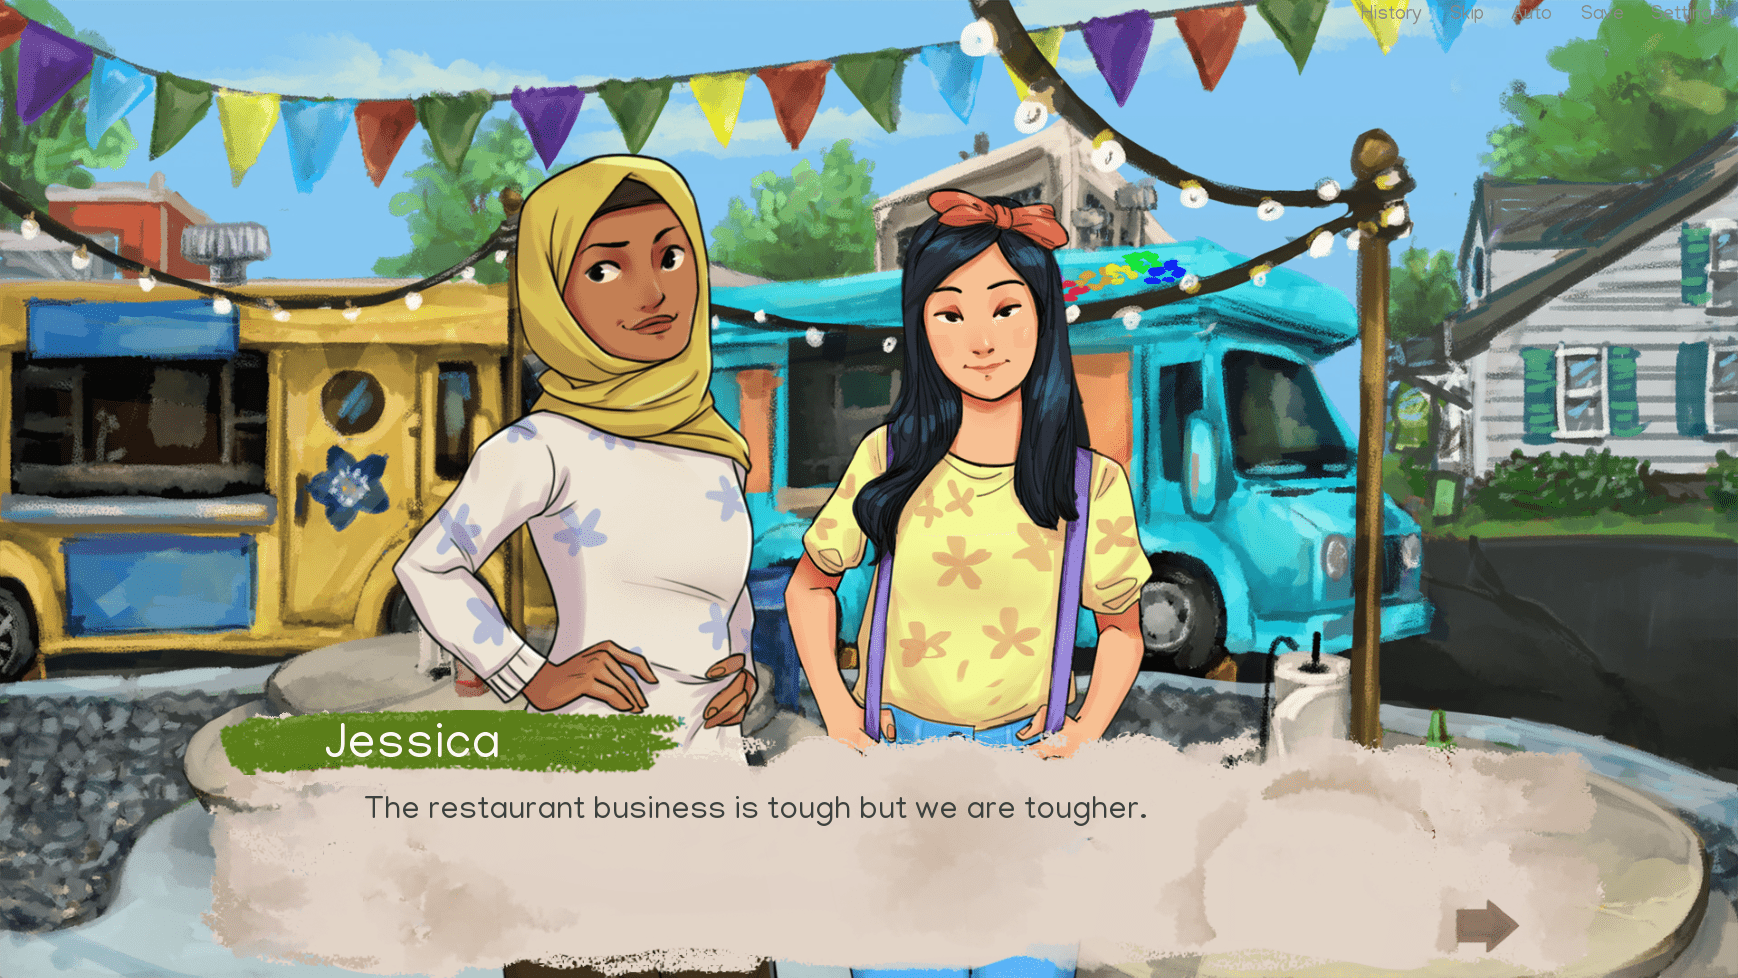 Amira and Jessica in Good Lookin' Home Cookin'